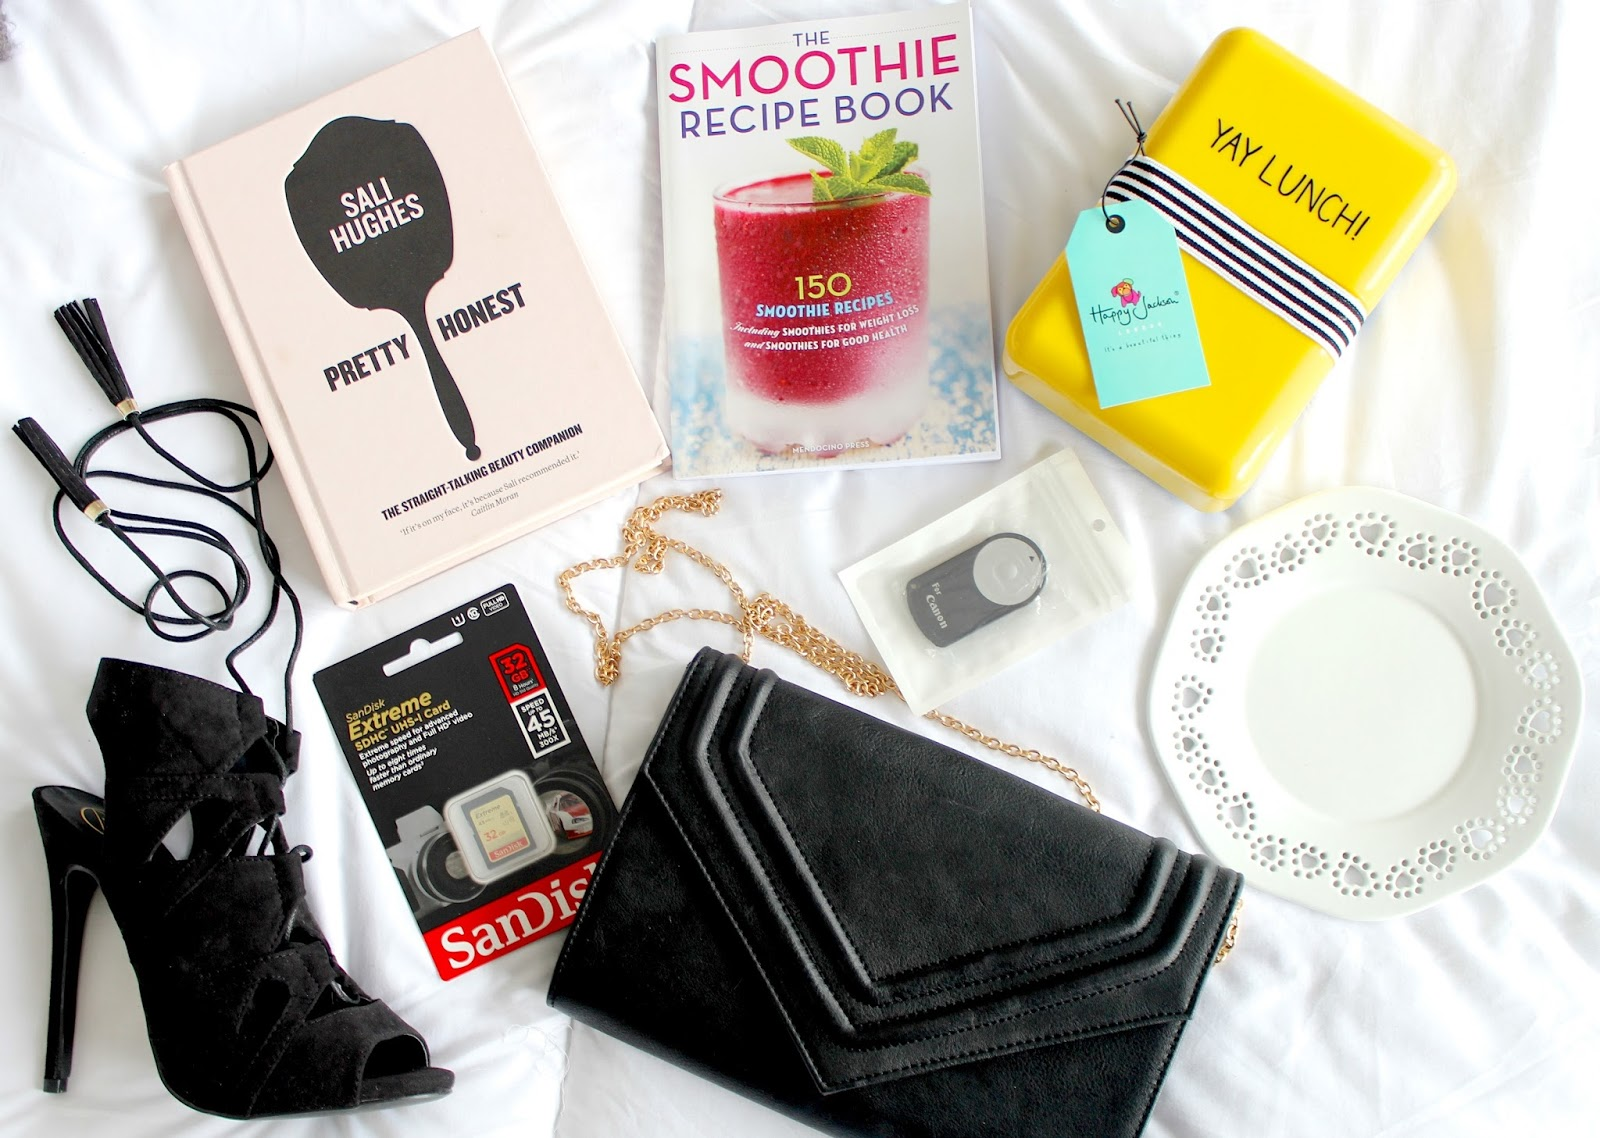 None Beauty Haul, Sali Hughes Pretty Honest Review, Missguided Valentina Heels, Homemade Smoothie Recipes, Happy Jackson Yay Lunch Lunchbox, Haul